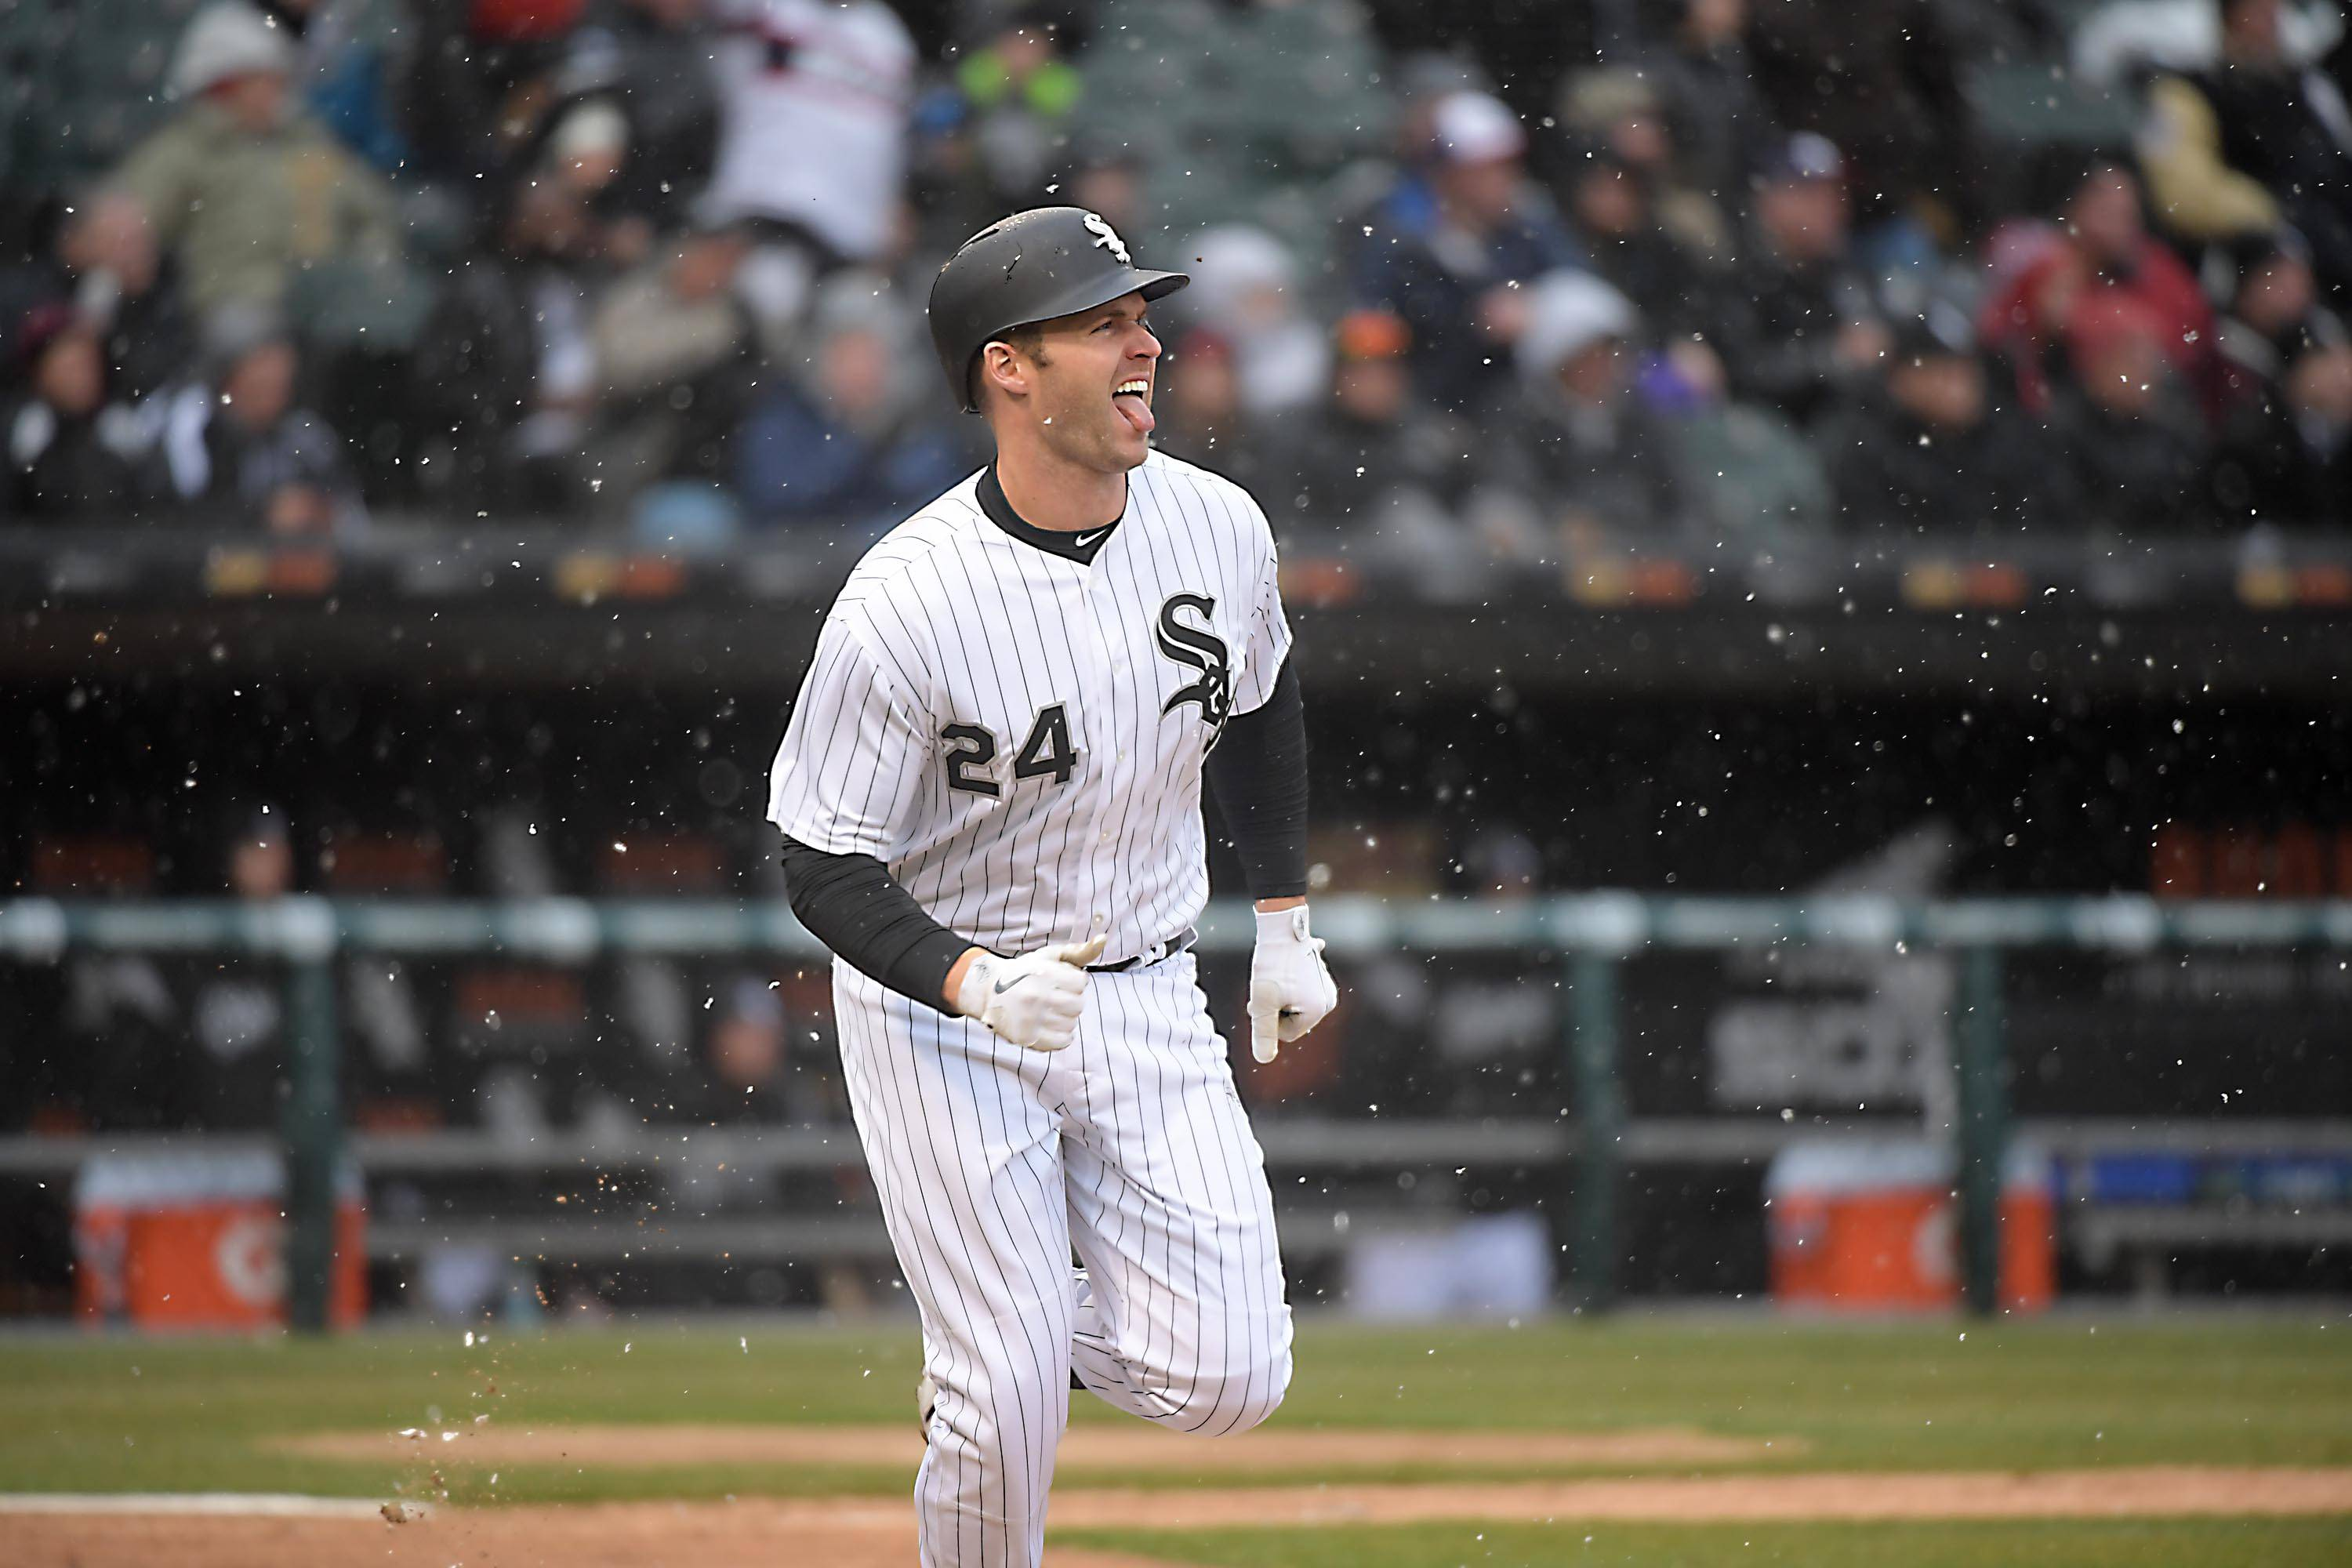 Chicago White Sox batter Matt Davidson sticks out his tongue as he watches his one-run double in the fifth inning in the home opener game against the Detroit Tigers Thursday at Guaranteed Rate Field in Chicago.